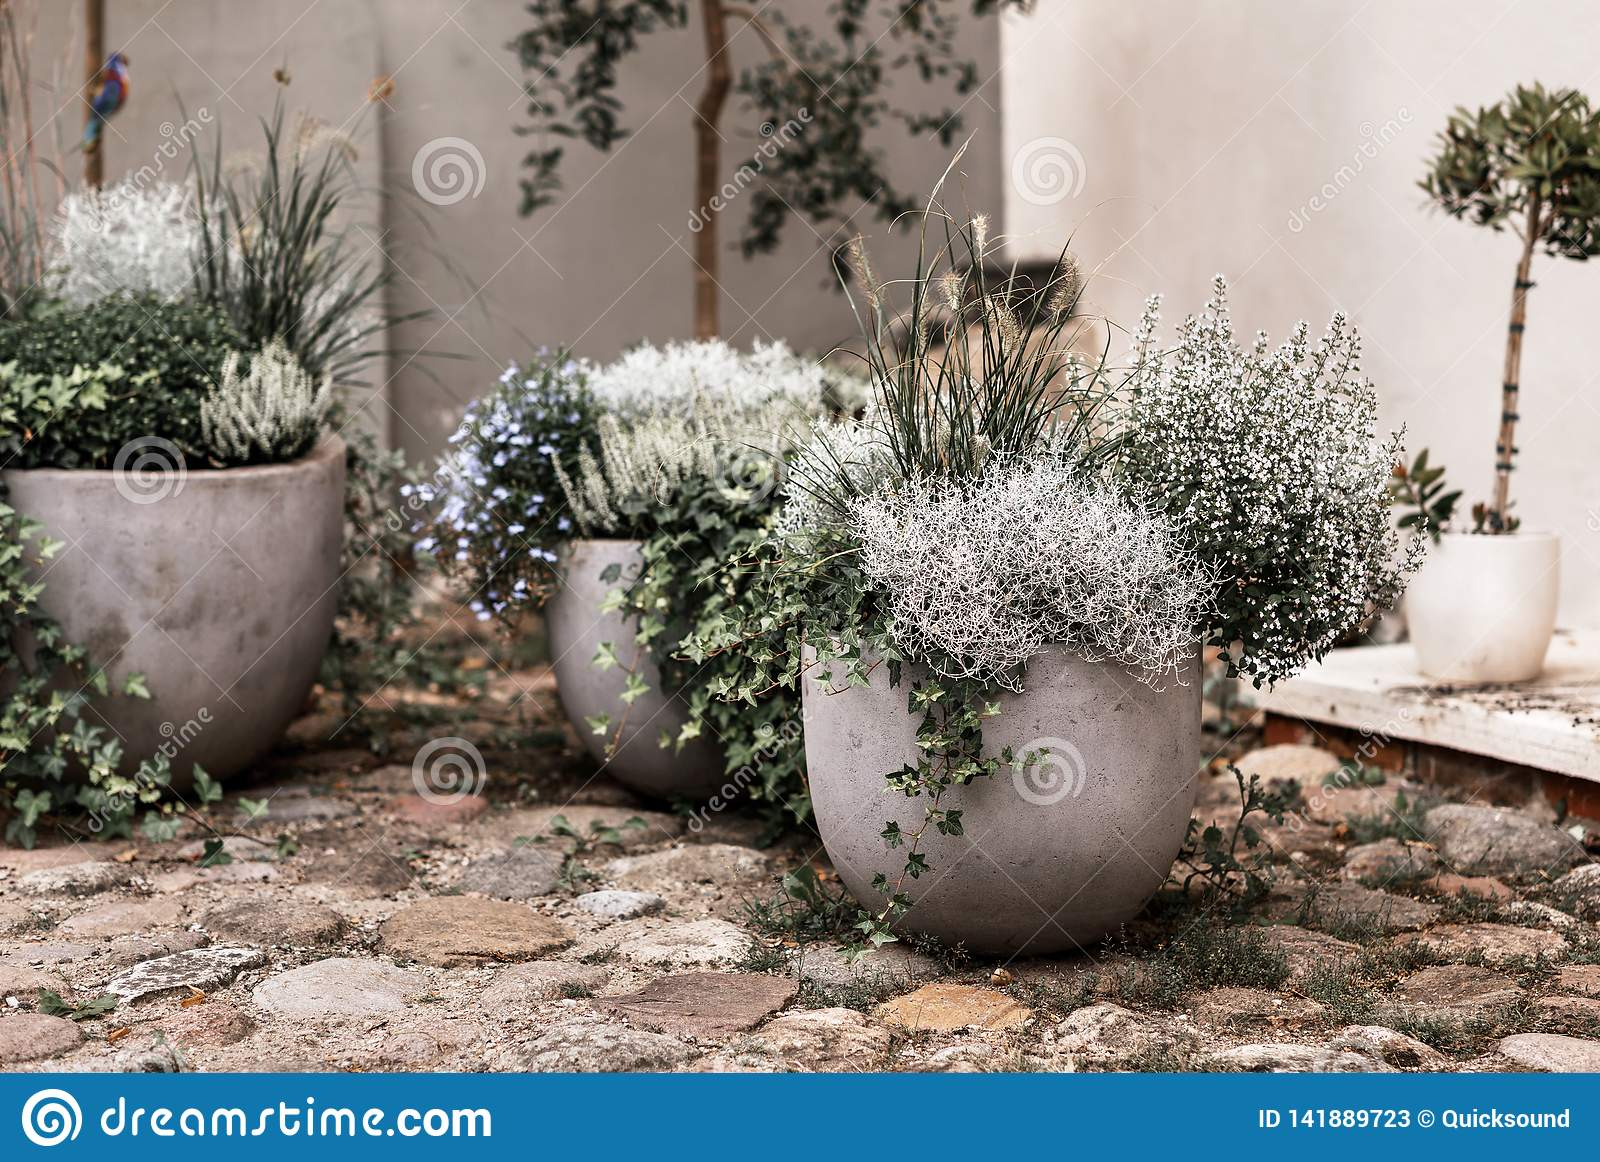 Garden Plants In Ceramic Pots Stock Image Image Of Plants Potted 141889723